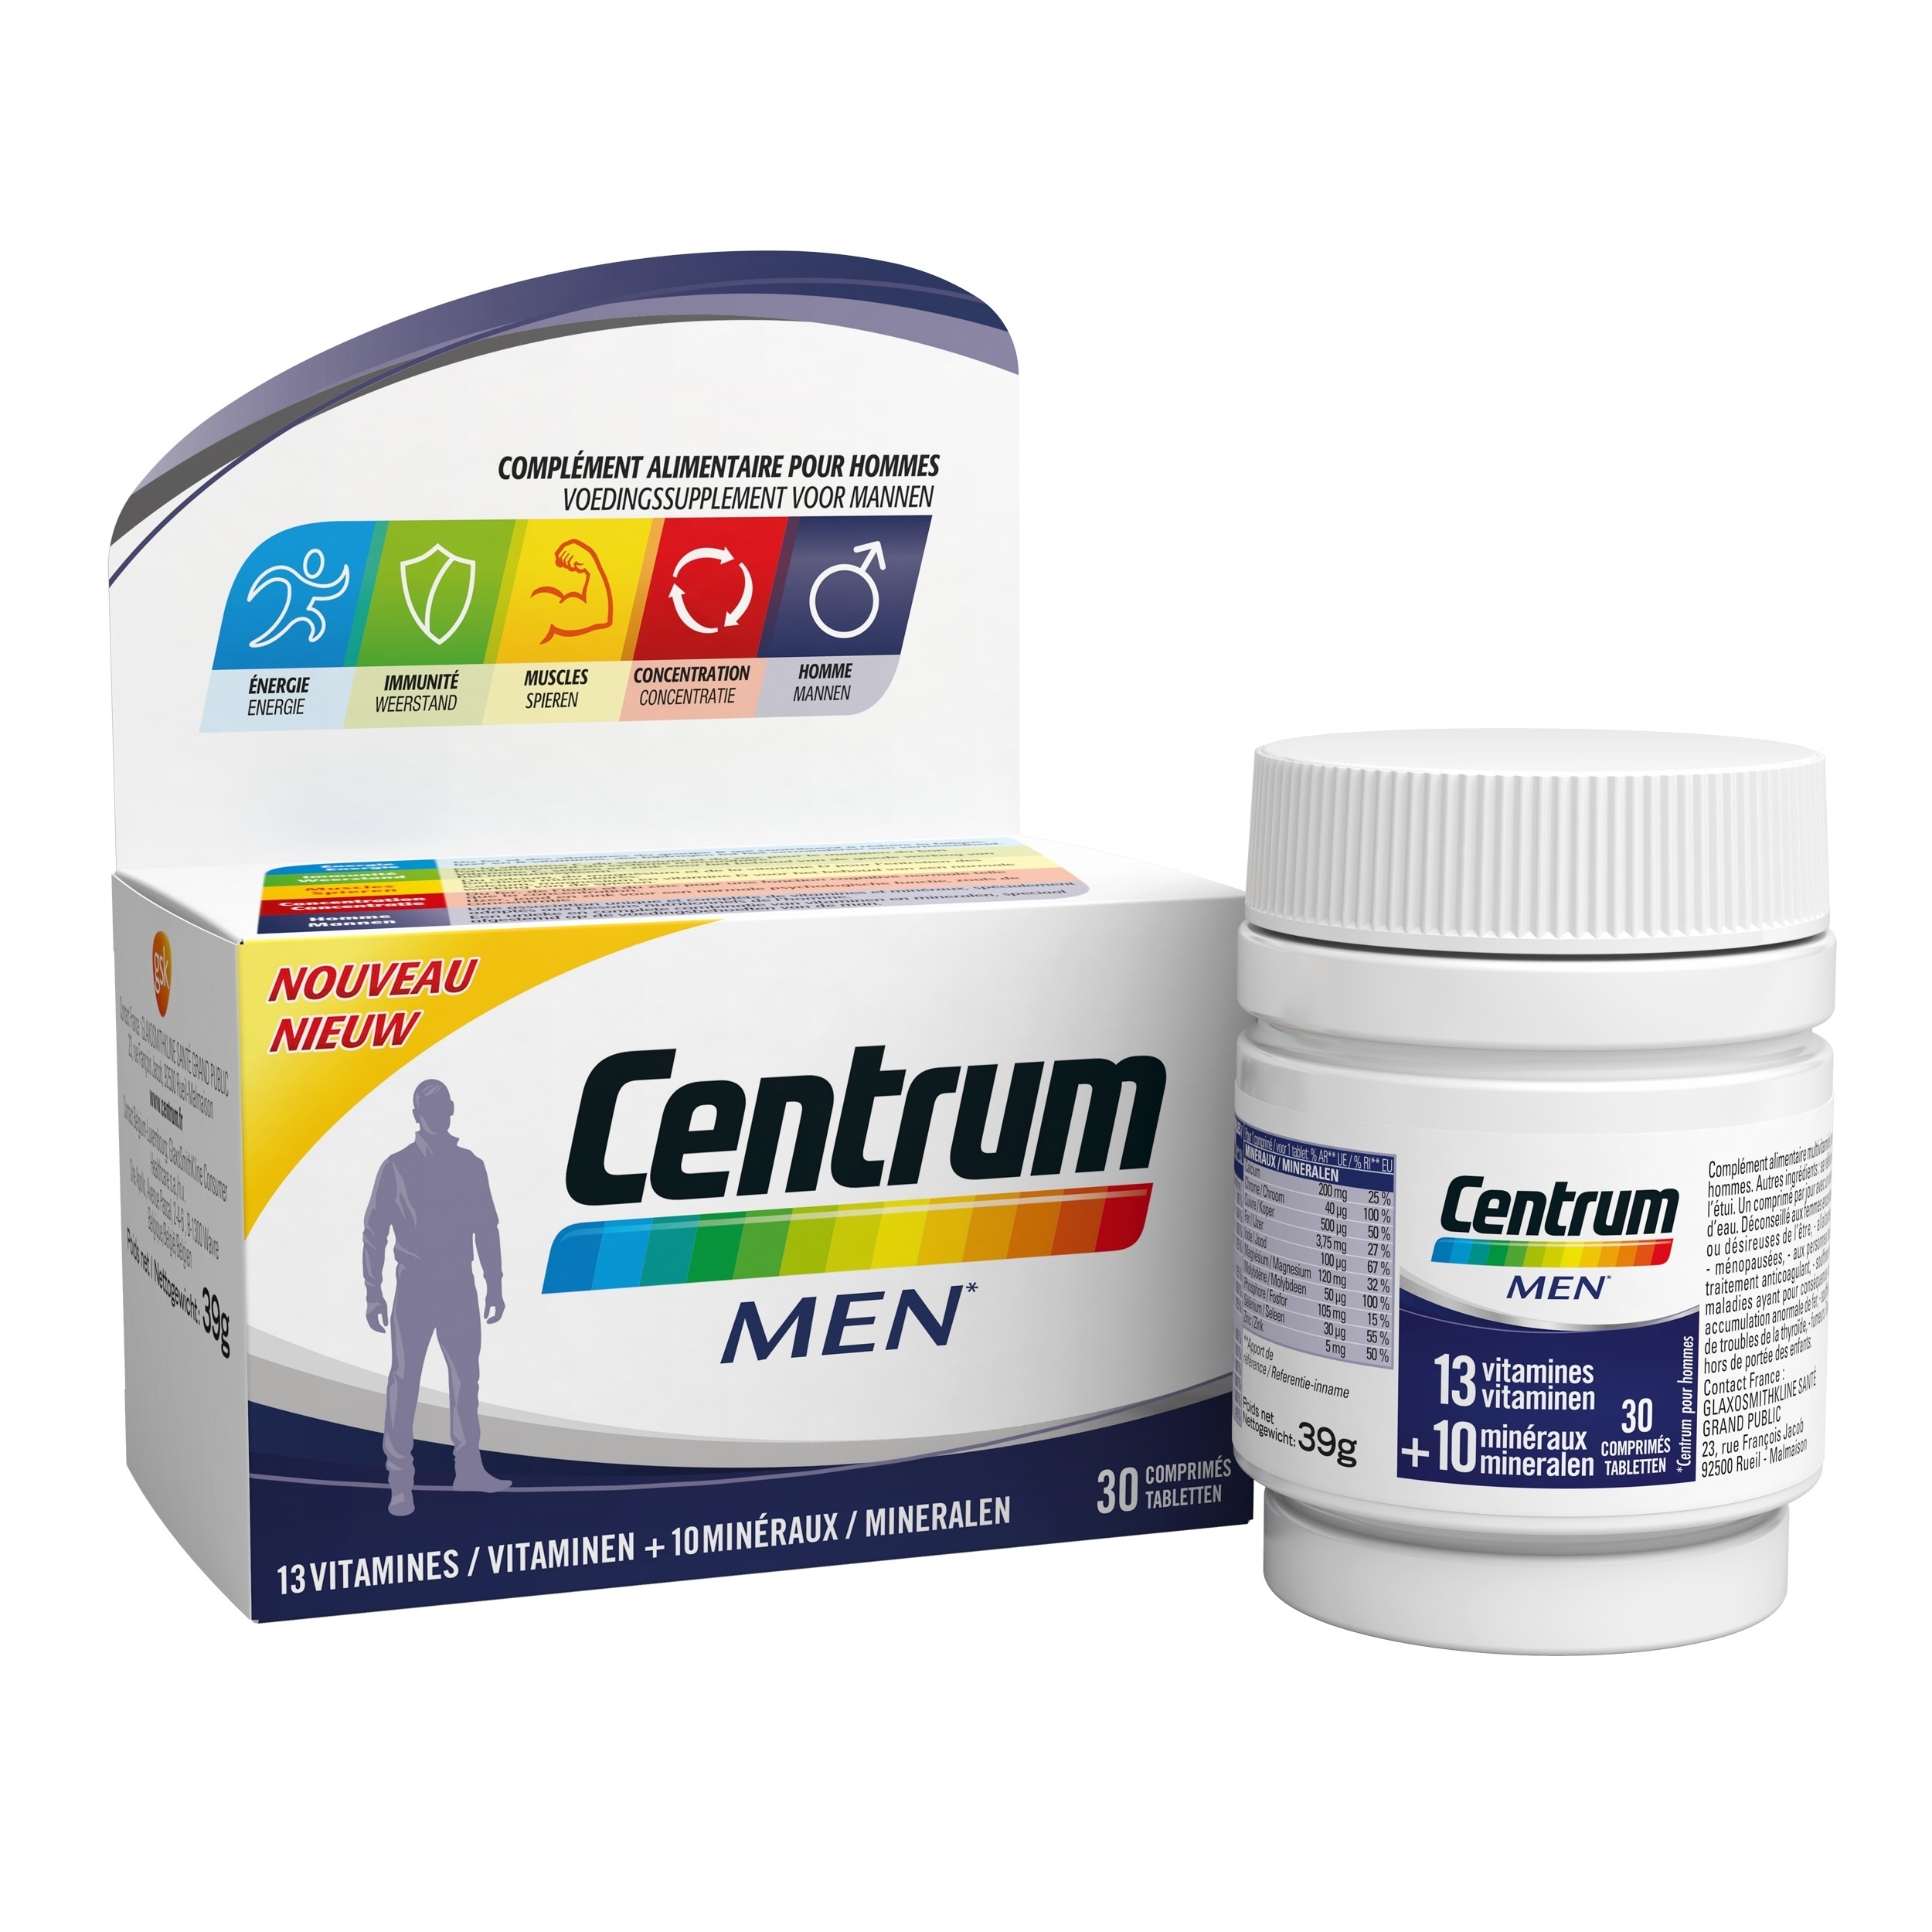 Image of Centrum Men